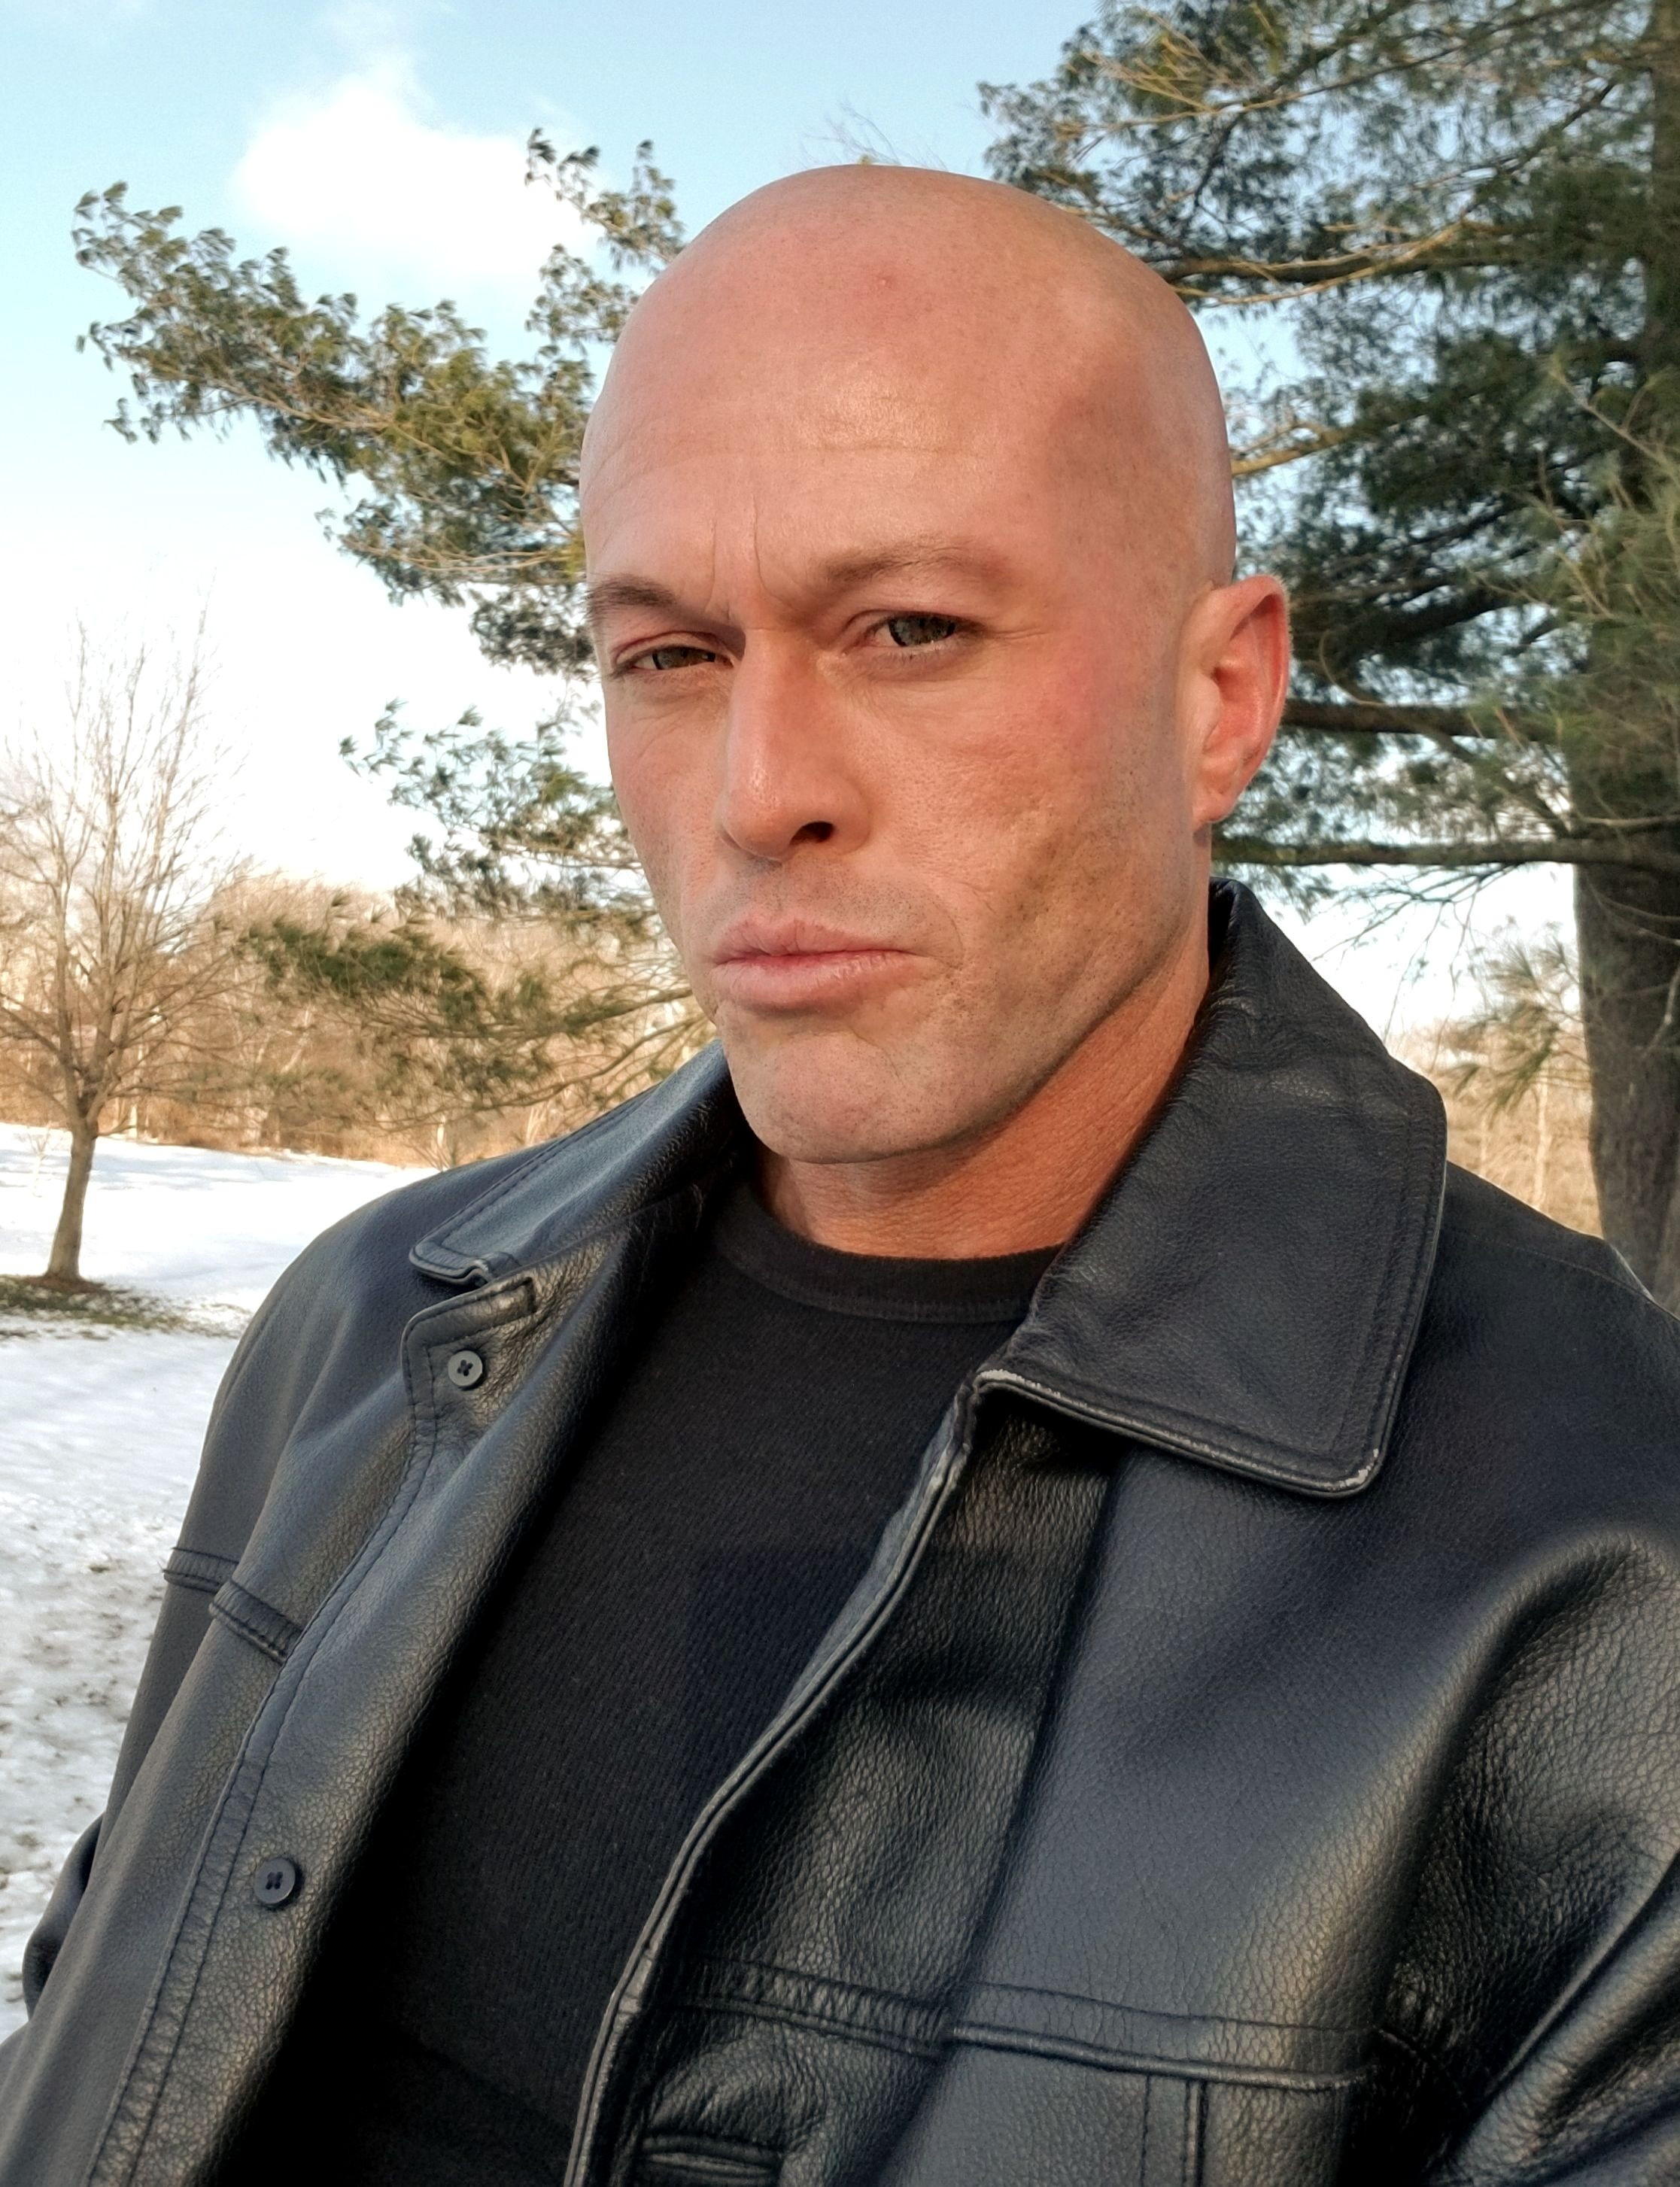 Model & Actor John Joseph Quinlan Black Leather 12-13-2017 #JohnQuinlan